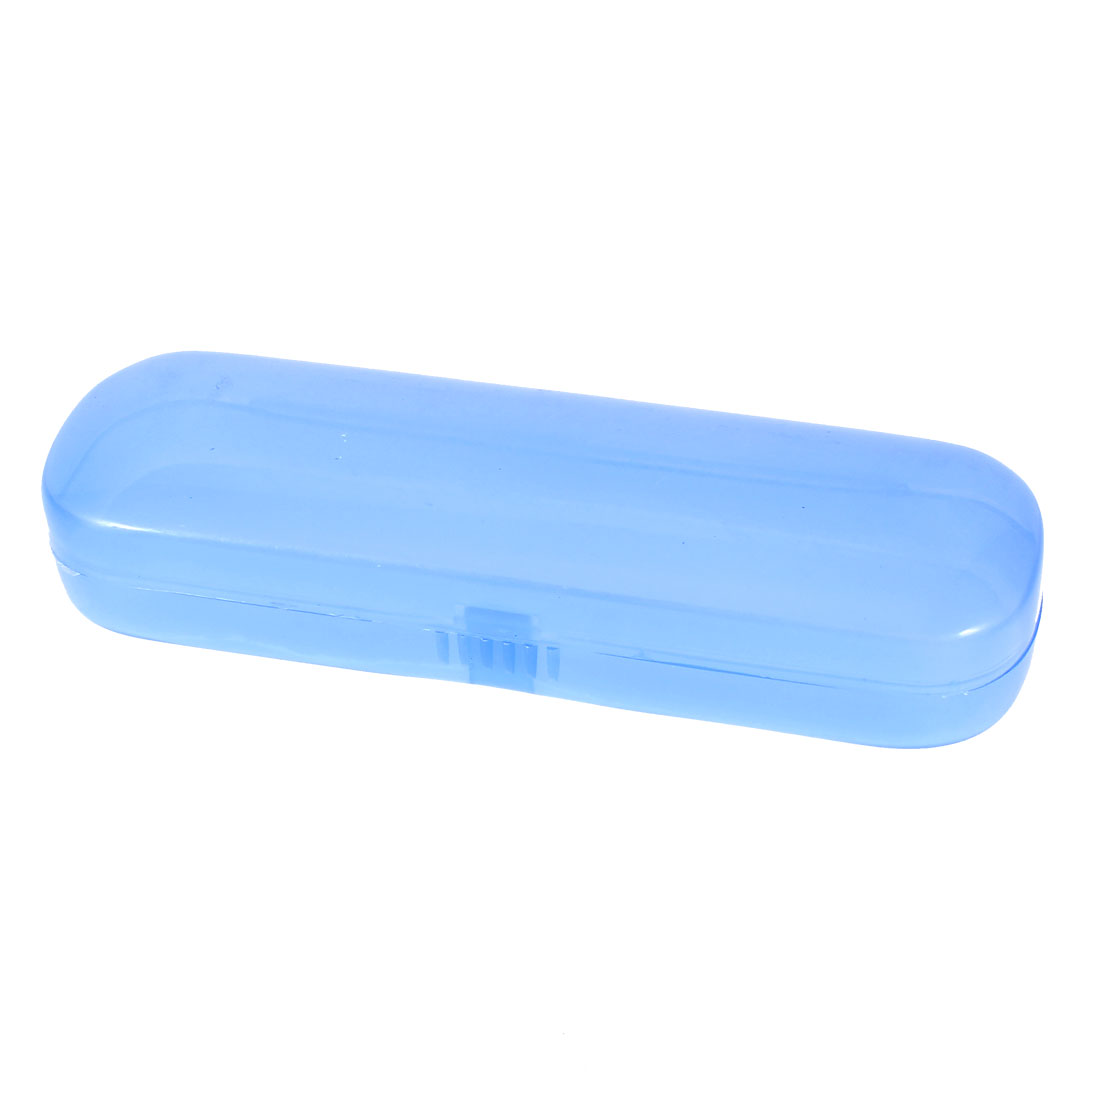 Rectangle Design Plastic Eyeglasses Spectacles Case Storage Box Clear Blue